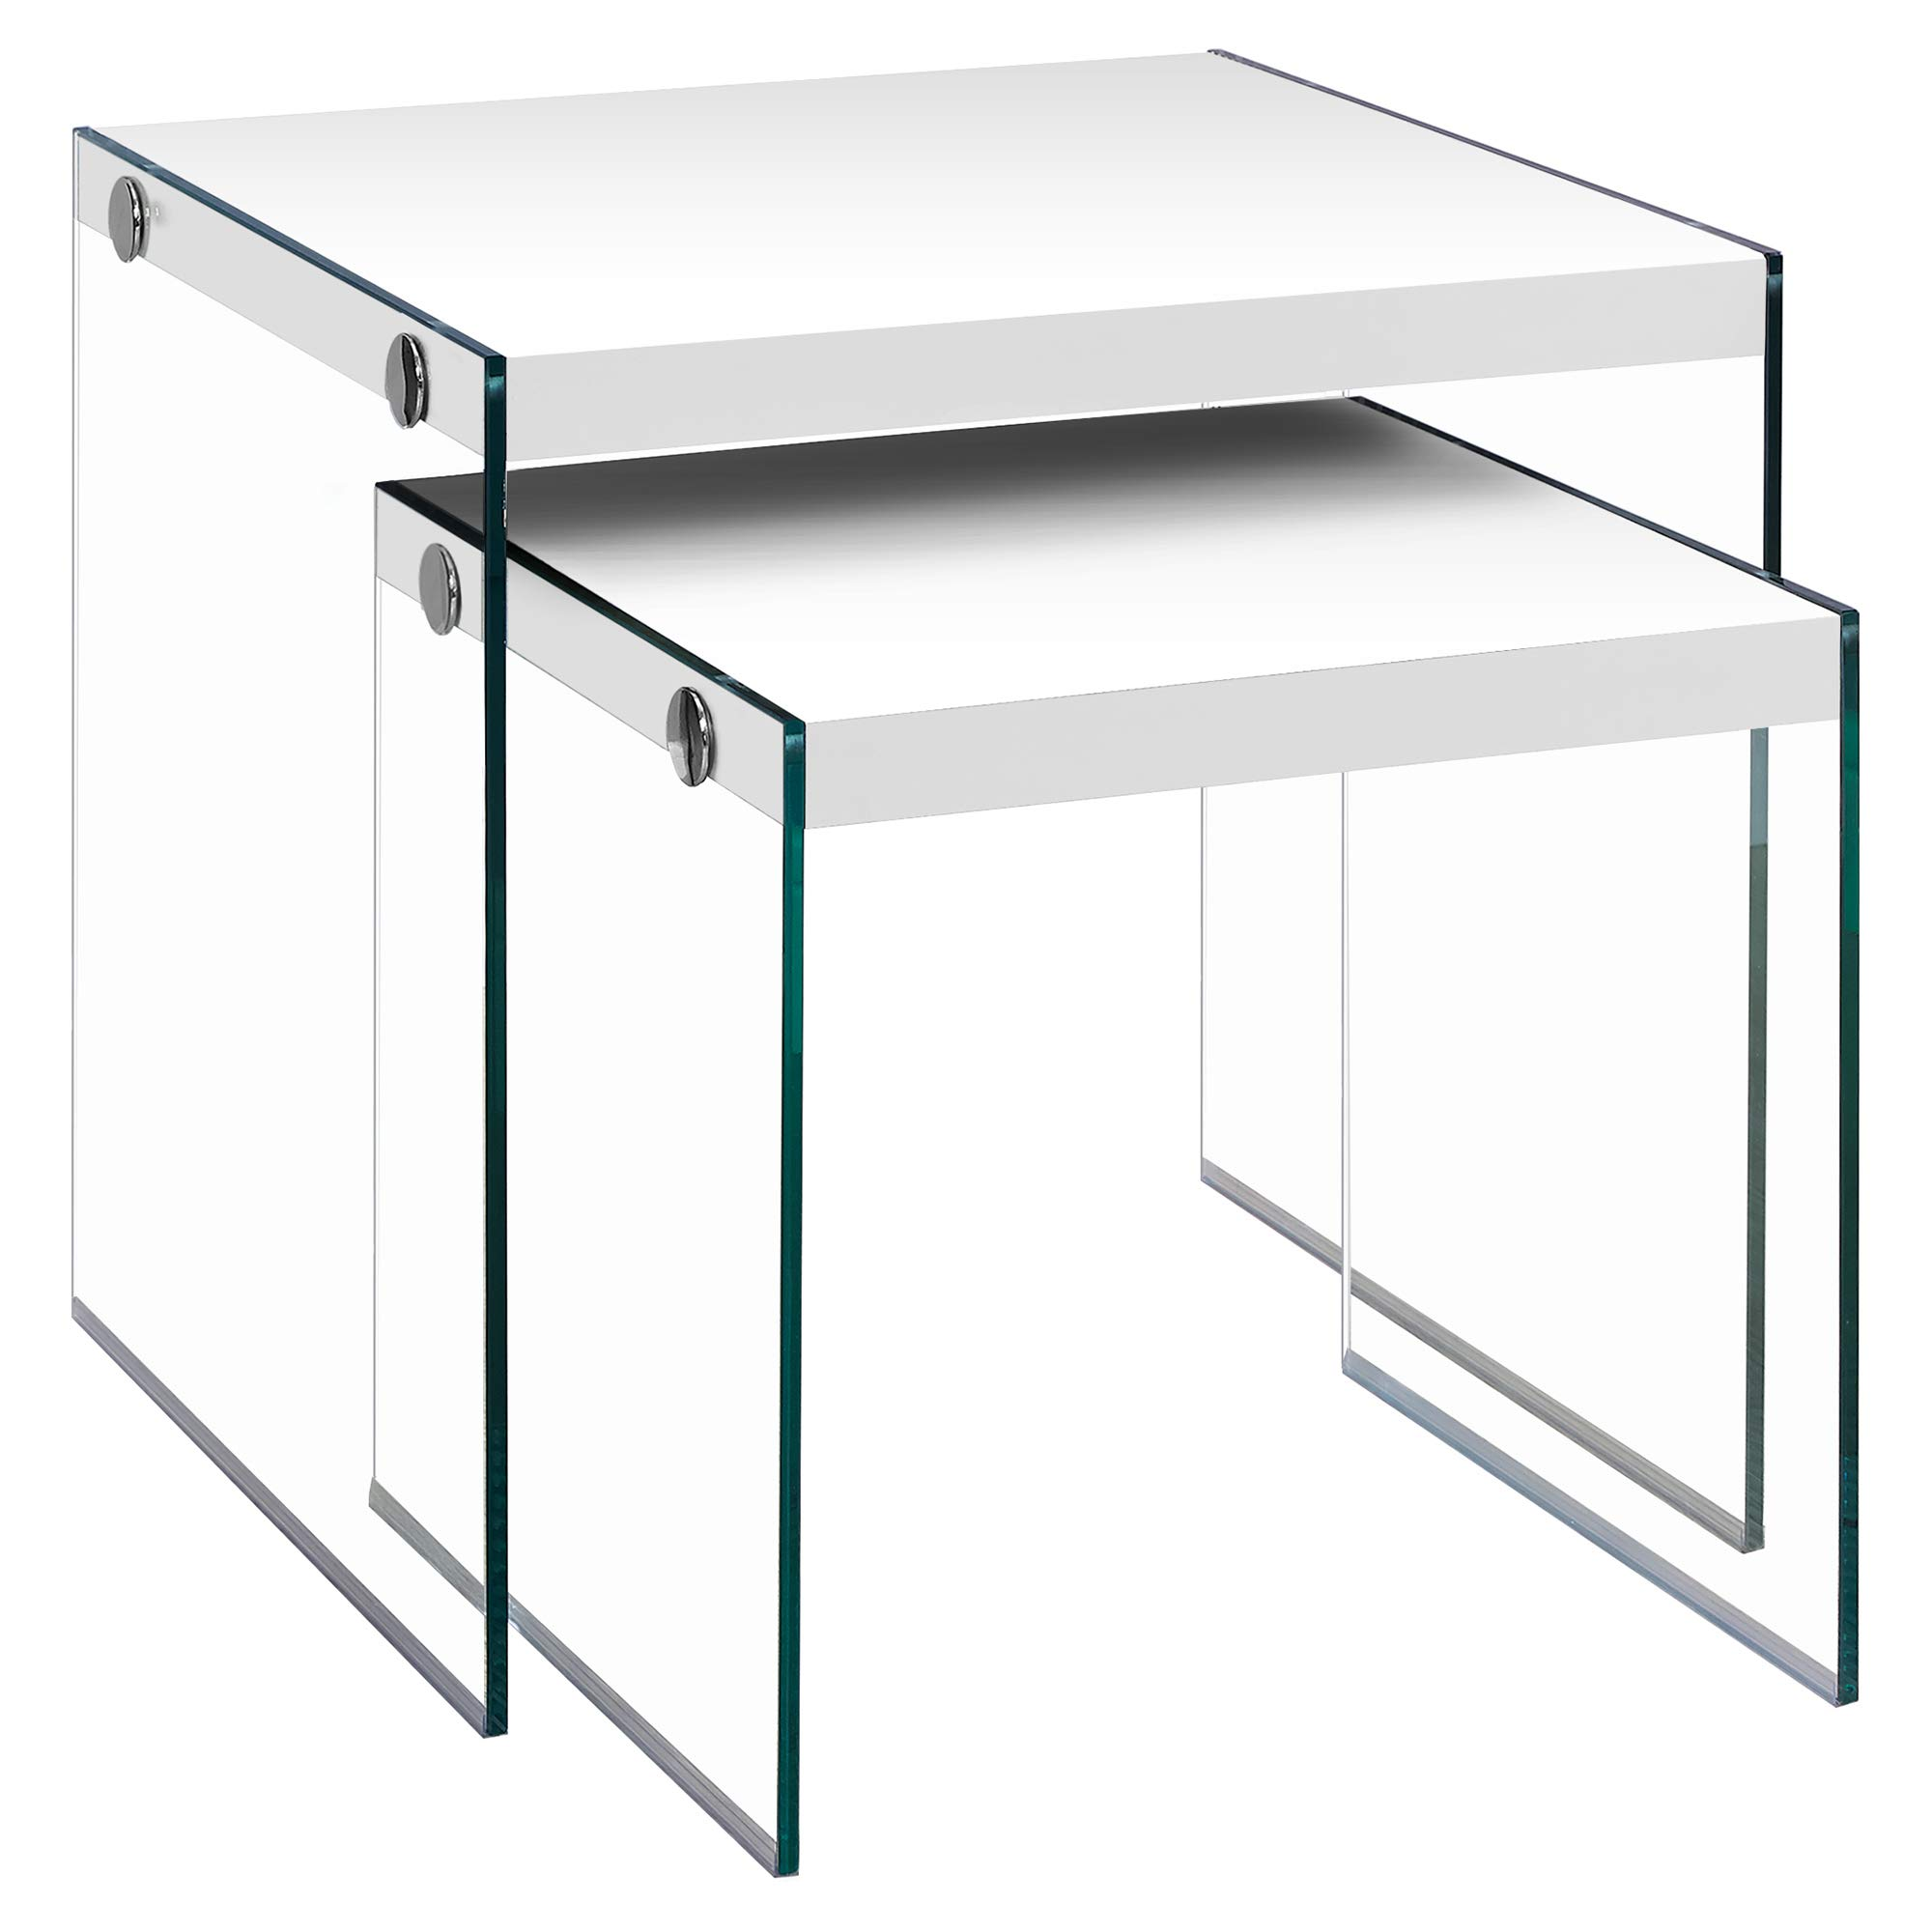 Monarch Specialties I 3287,Nesting Table, Tempered Glass, Glossy White by Monarch Specialties